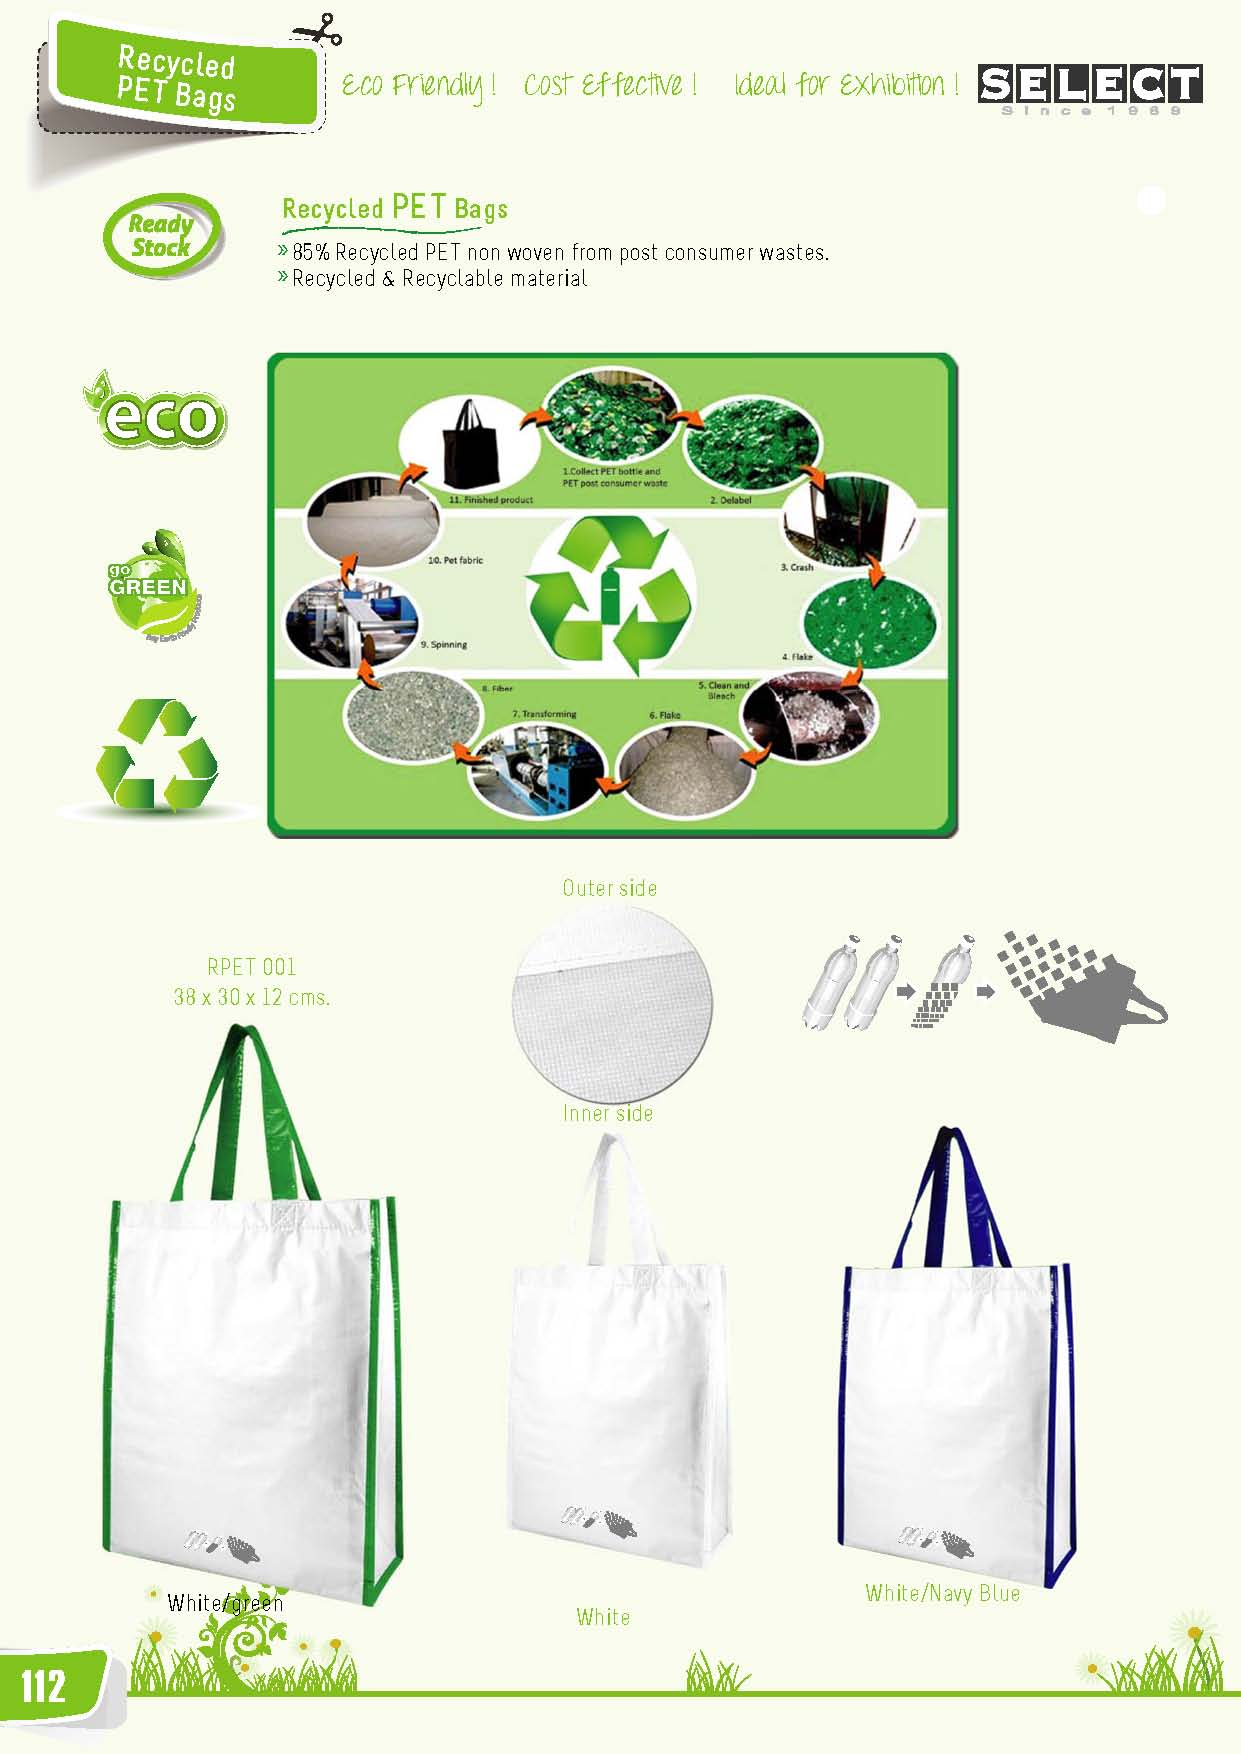 Recyclable bags